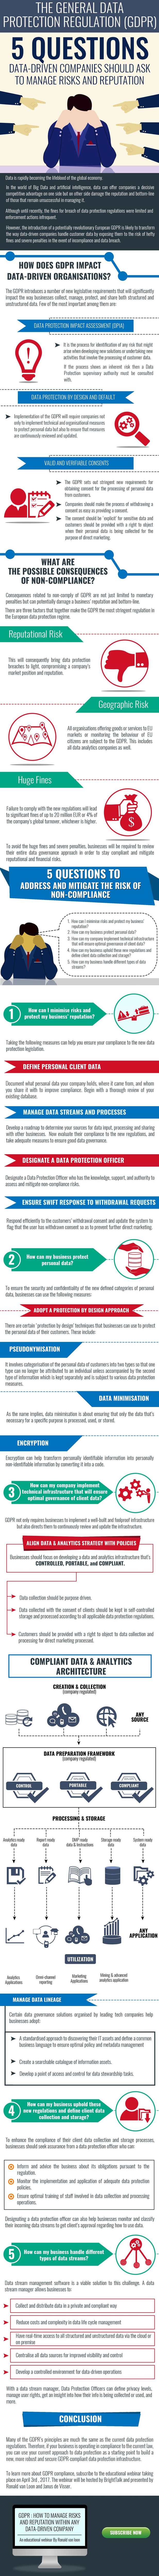 The #GDPR: 5 Questions #Data-Driven Companies Should Ask to Manage Risks and Reputation #Bigdata #Infographics